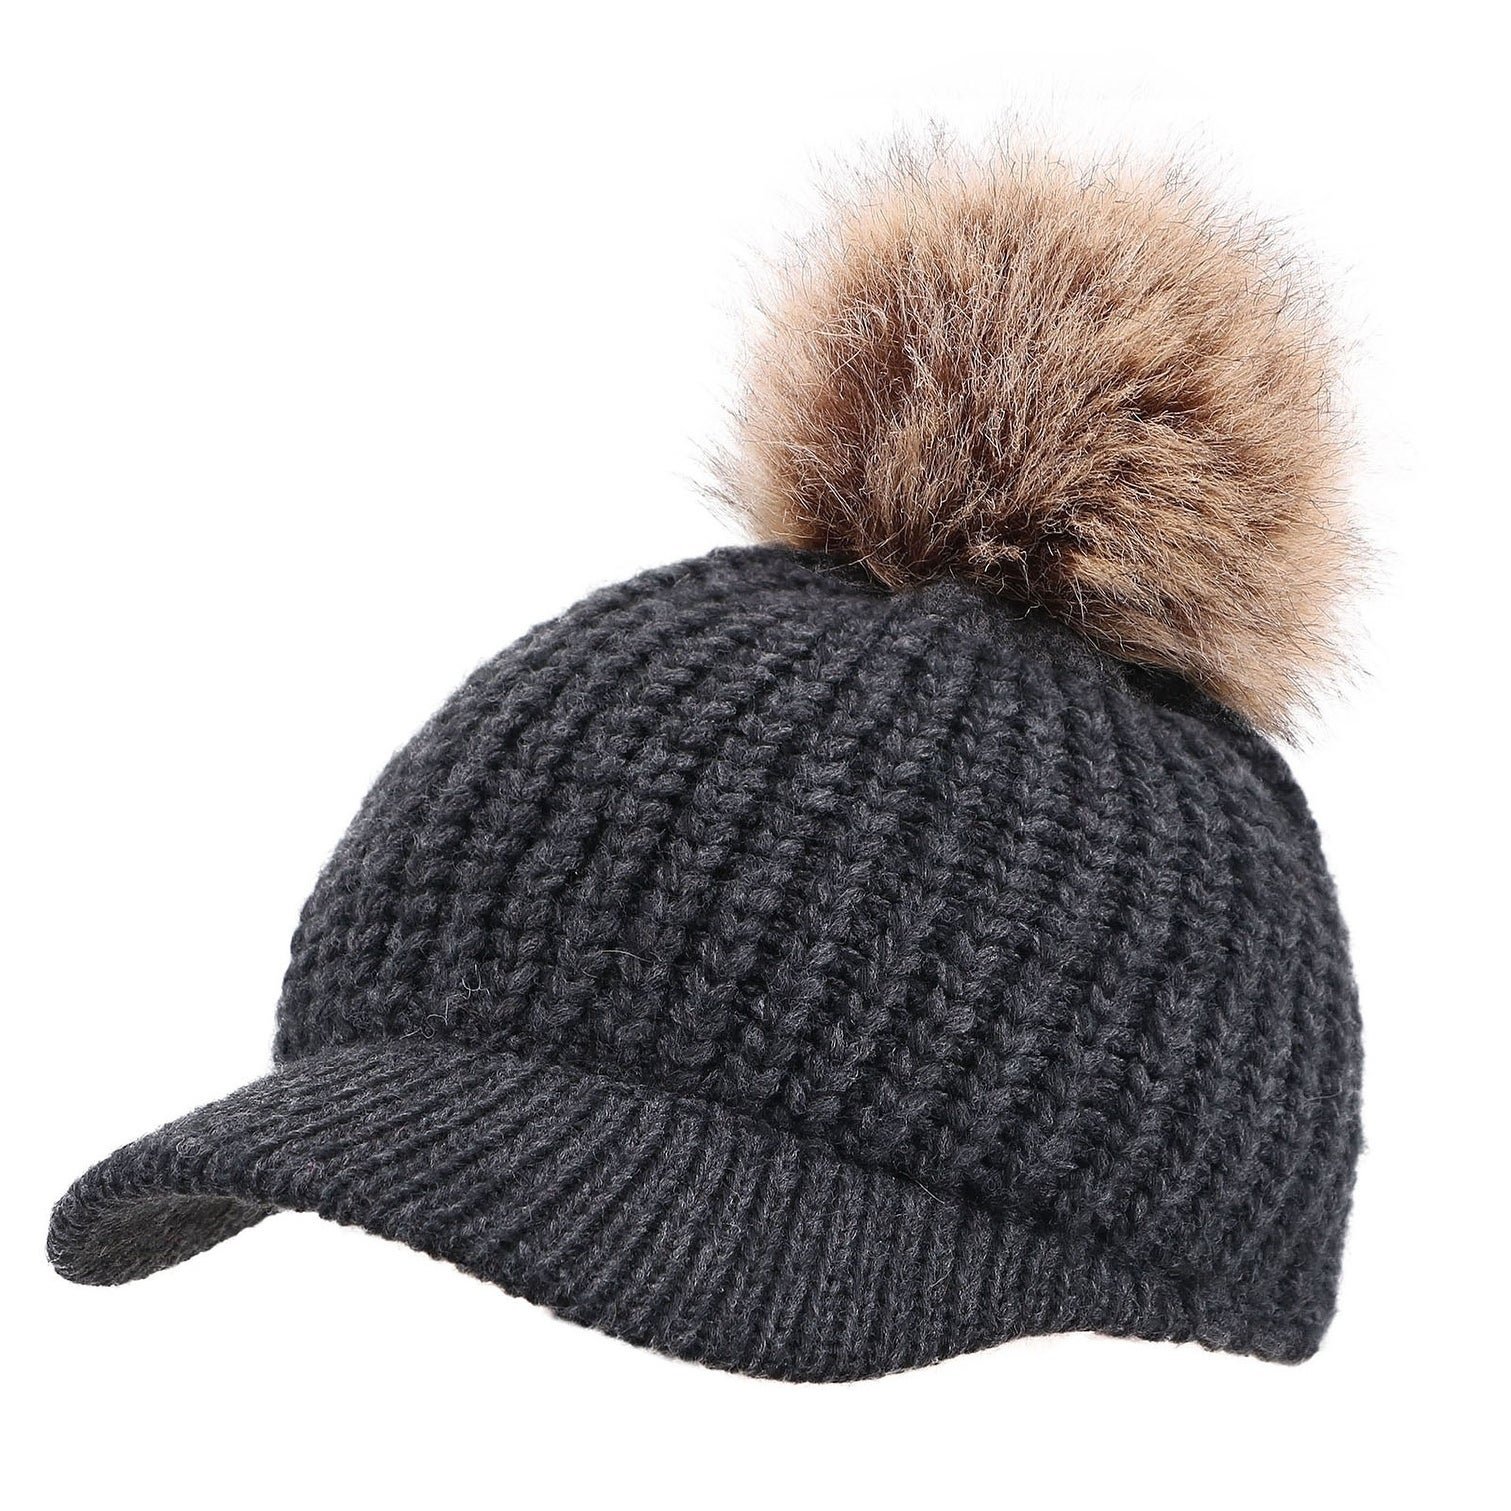 Shop Arctic Paw Cable Knit Beanie with Faux Fur Pompom and Brim ... 38119c6c176